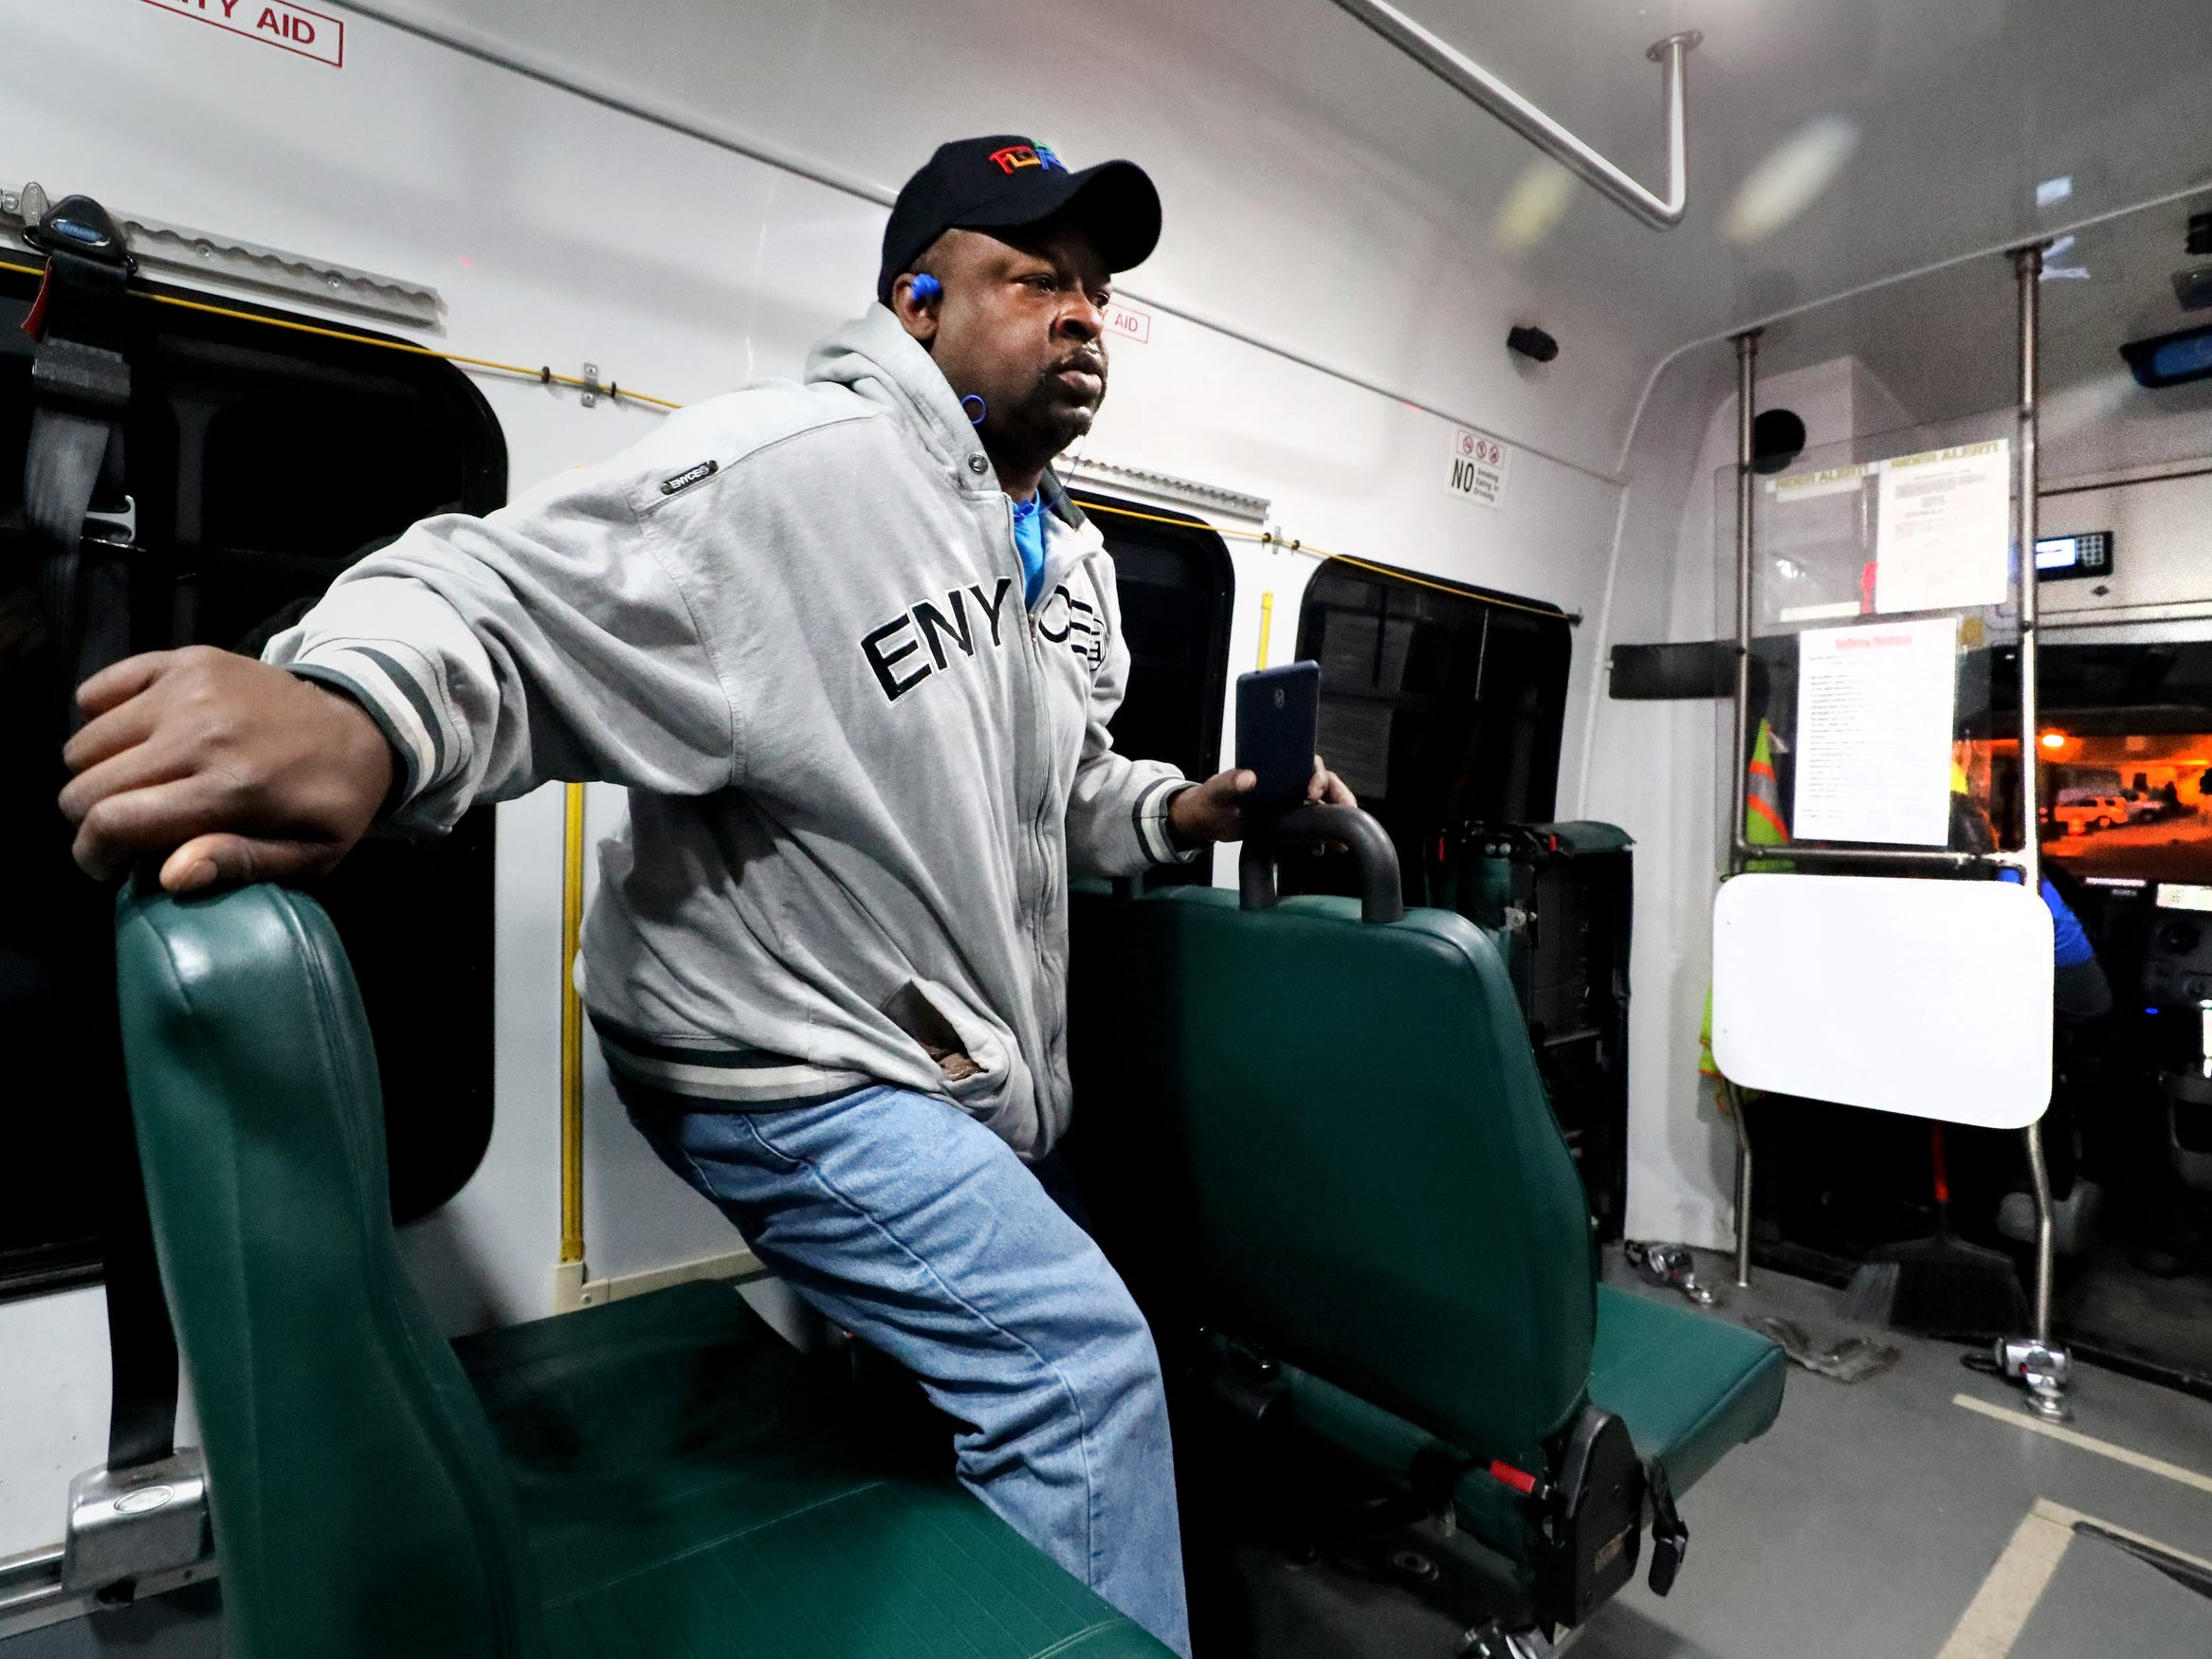 Joel Hicks stands up to get off the 6 am bus as he goes to work at City Cafe in downtown Murfreesboro, on Tuesday, March 19, 2019. Many people rely on the Murfreesboro bus service Rover to get back and forth to their jobs.